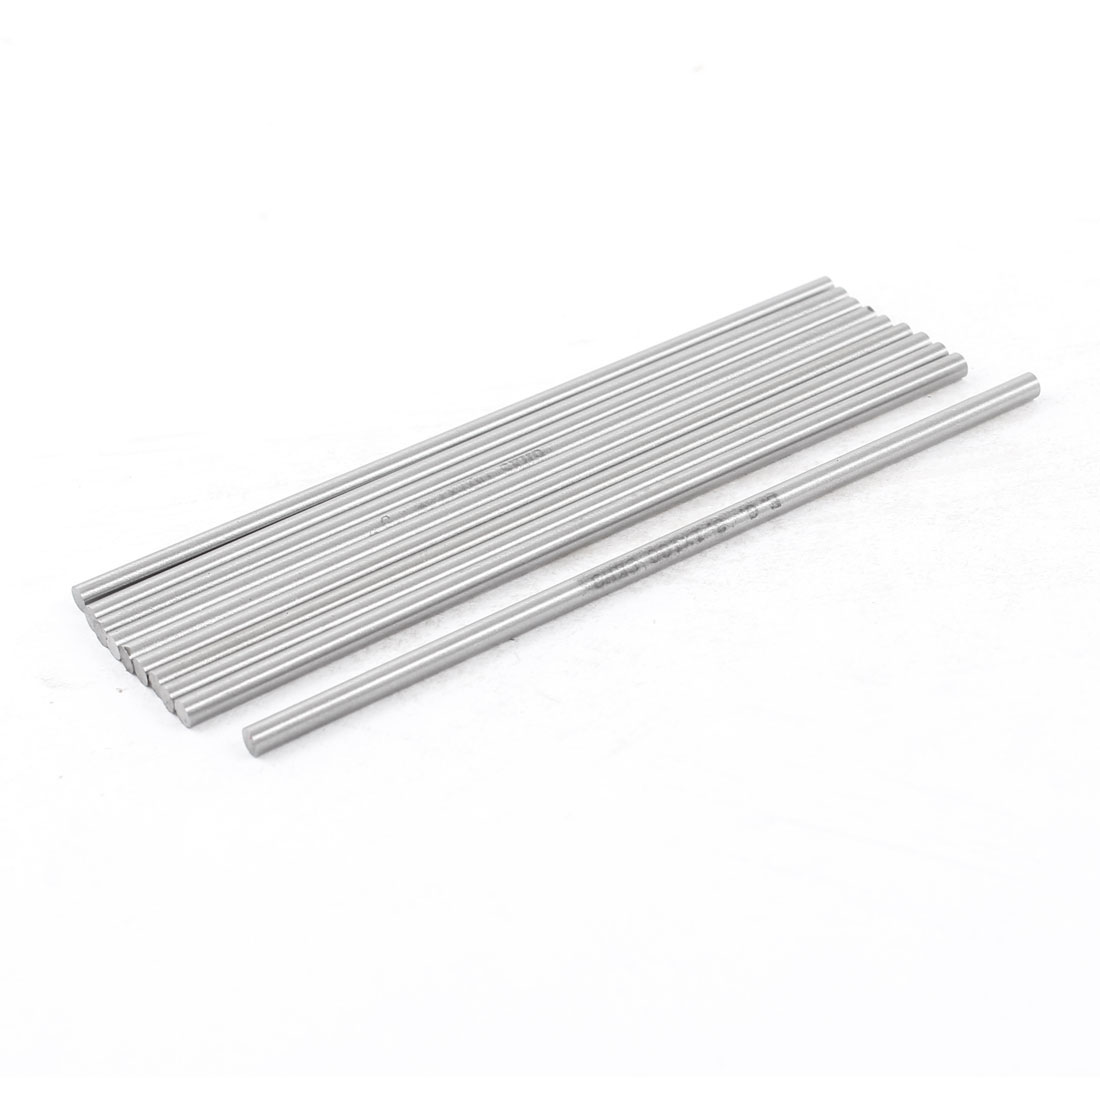 Unique Bargains 10 Pcs 3.1mm x 100mm HSS Grooving Tool Round Turning Lathe Bars Silver Gray - image 1 de 1